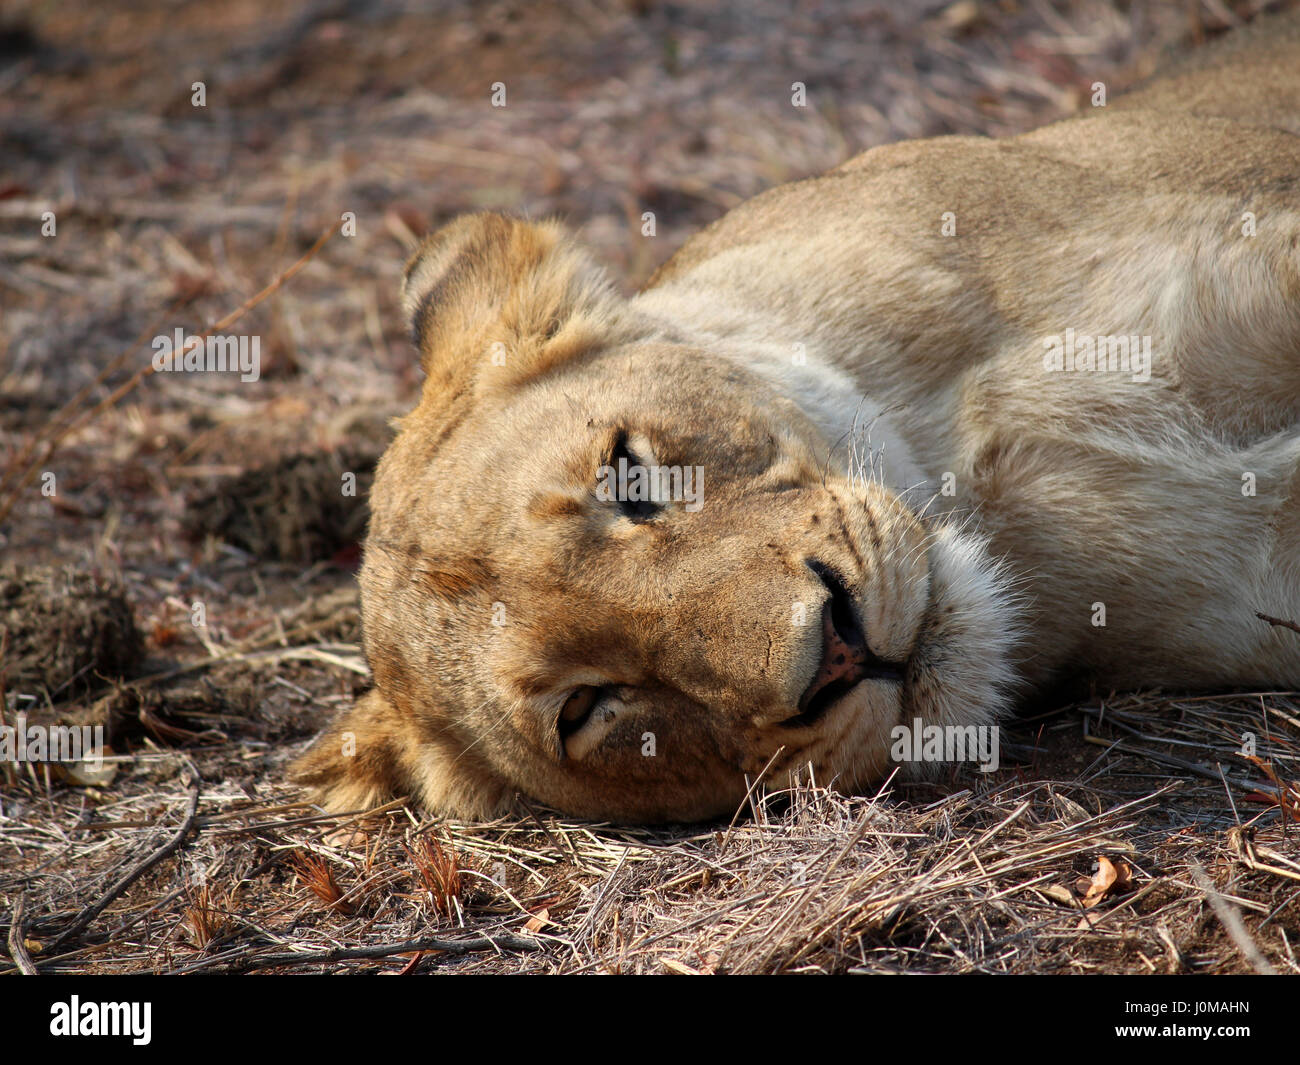 Lioness looking directly into the camera - Stock Image